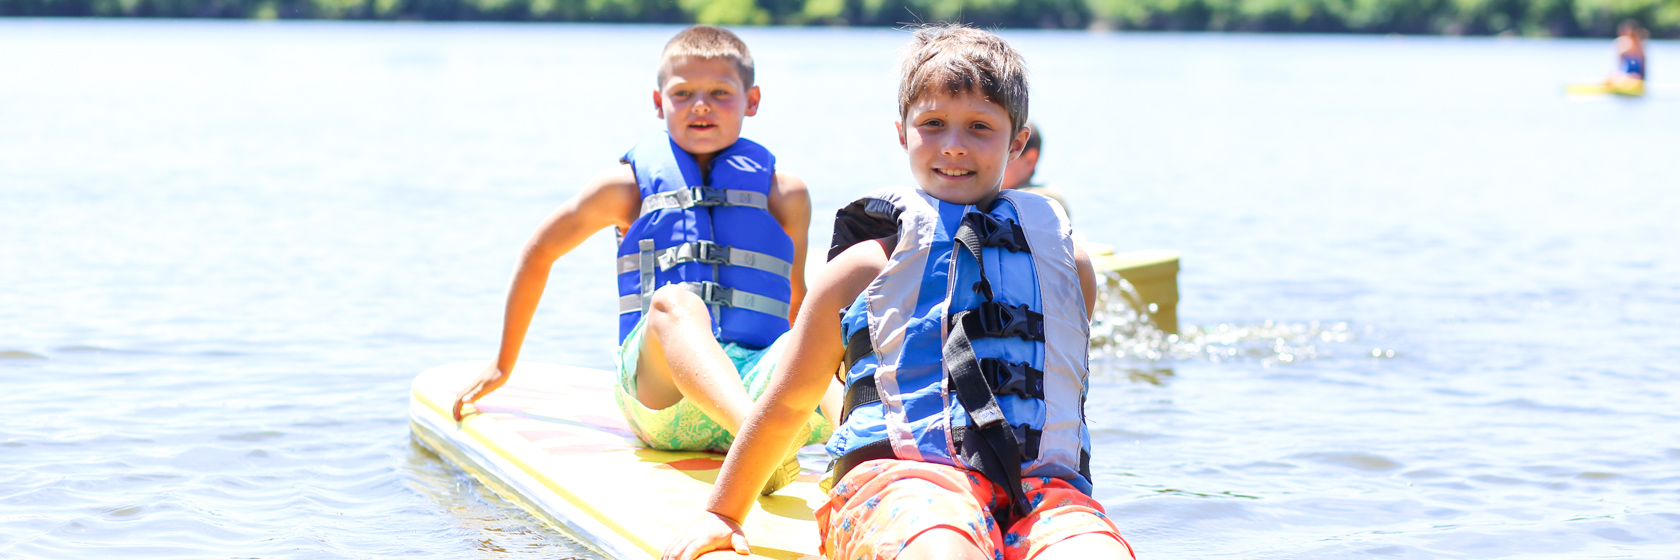 Two boy campers sitting on a paddle board in the lake